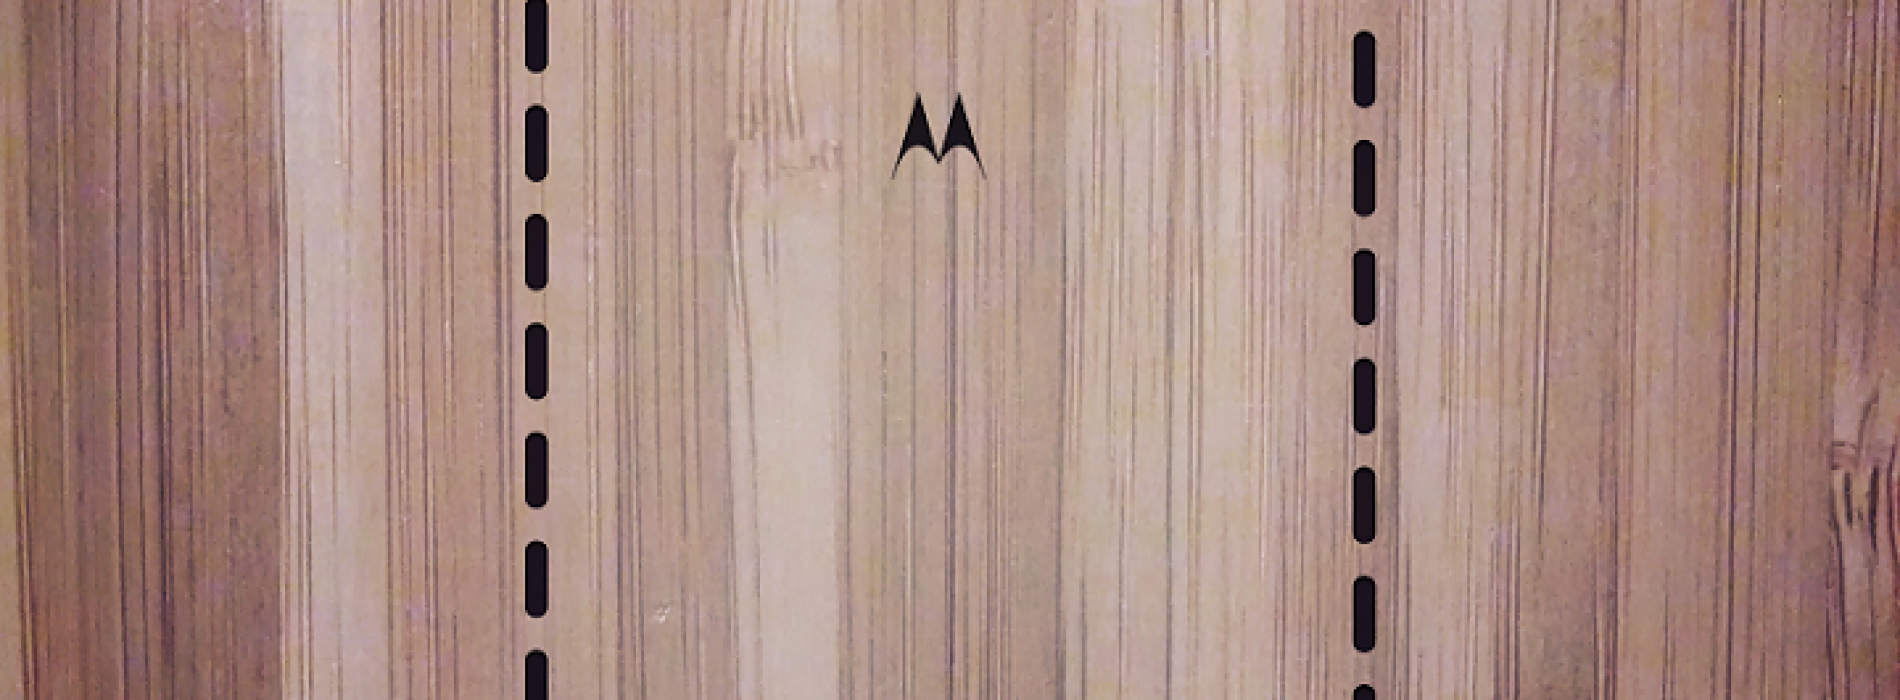 Motorola again teasing the wooden backs for Moto X